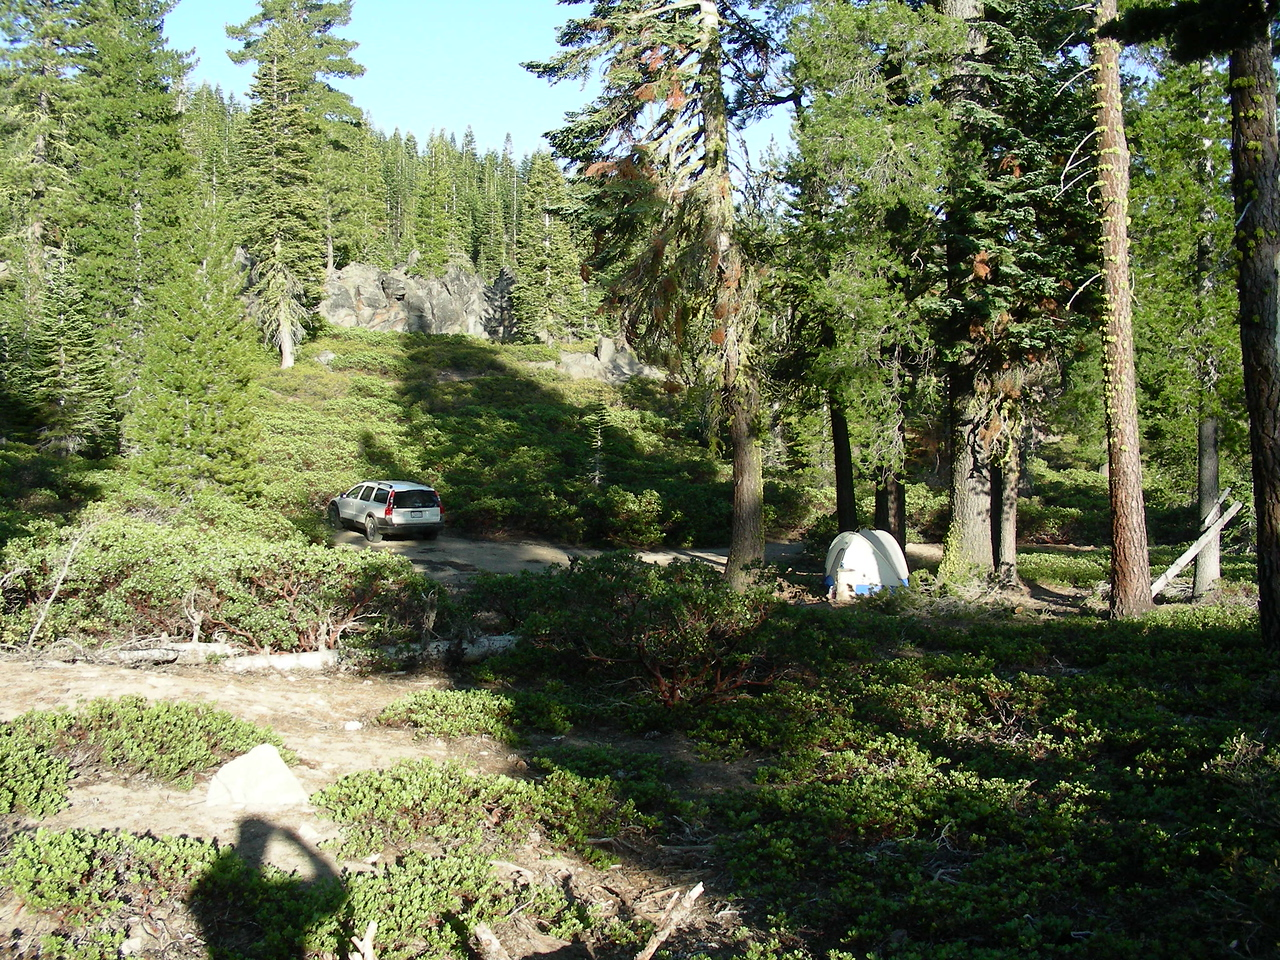 Campsite 1 | West side of Loomis Peak off Brokeoff Meadows road | May 23, 2009